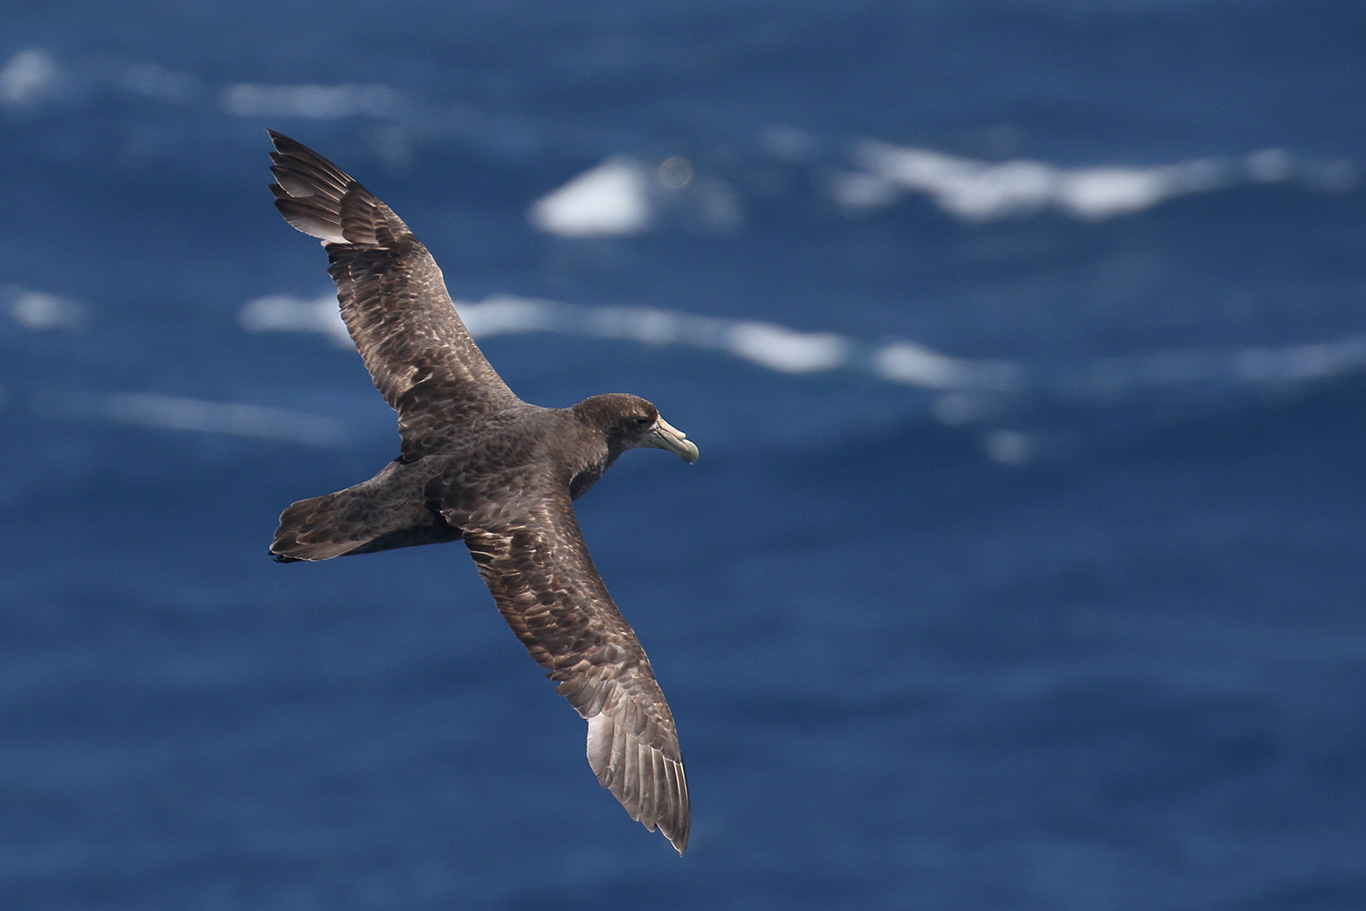 Southern Giant Petrel, At sea, c. 600km east of Argentina, north of The Falklands, South Atlantic Ocean.